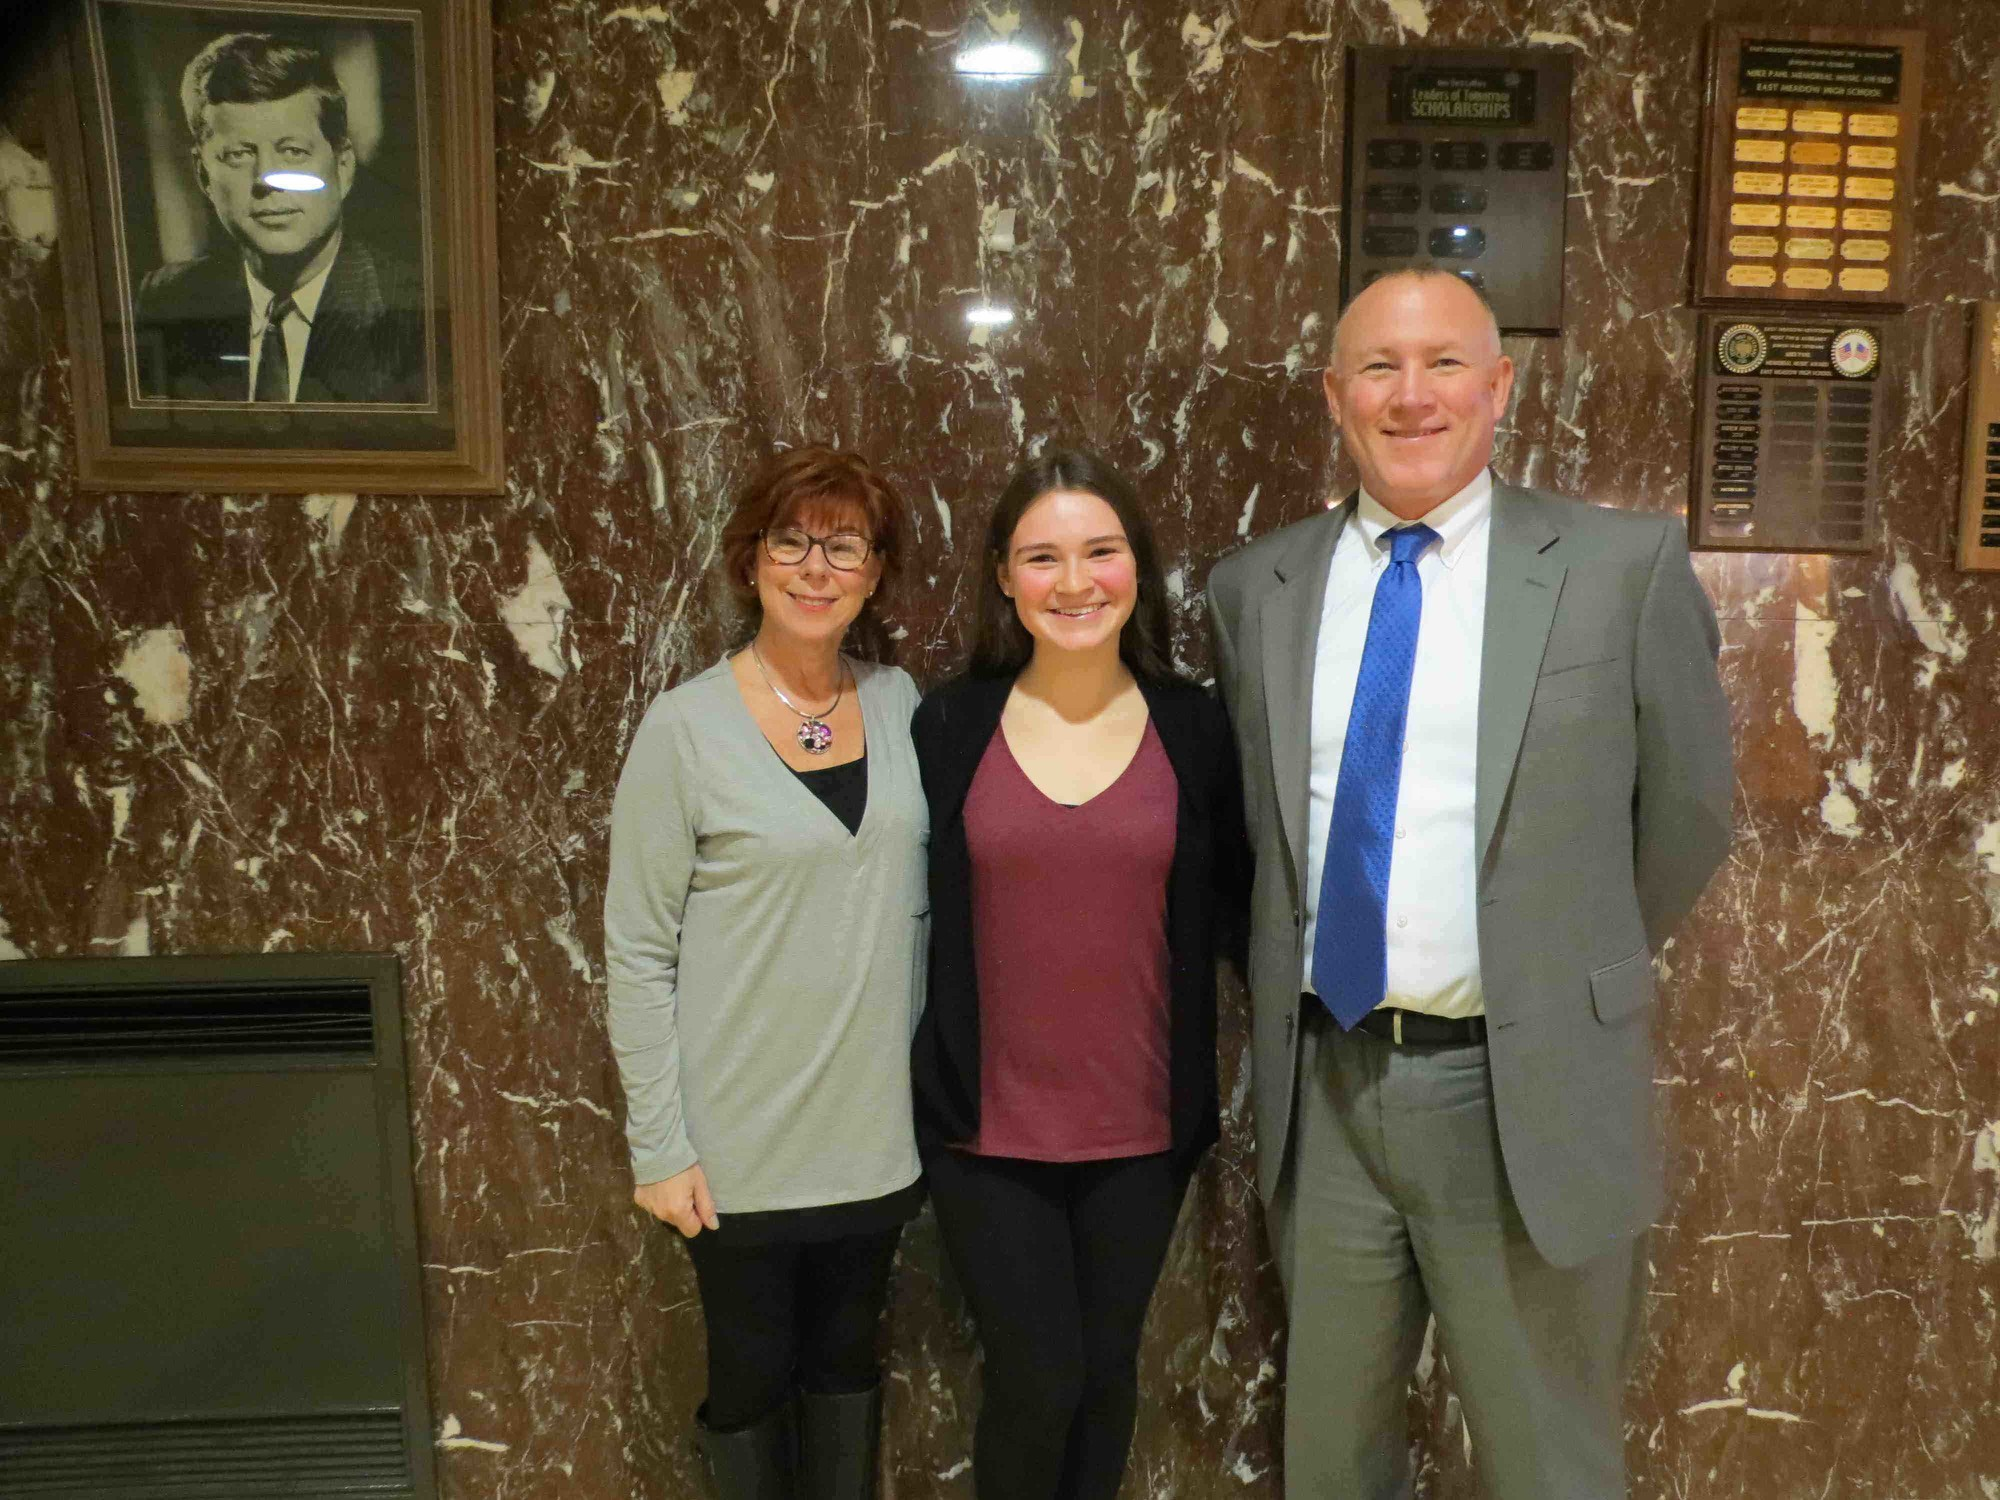 East Meadow High School Guidance Counselor and HOBY Committee Chairperson Mona Allen (left) and Assistant Principal Robert Hardwick congratulated sophomore Kristen Kavanagh on being named a Hugh O'Brian Youth Leadership ambassador this year.